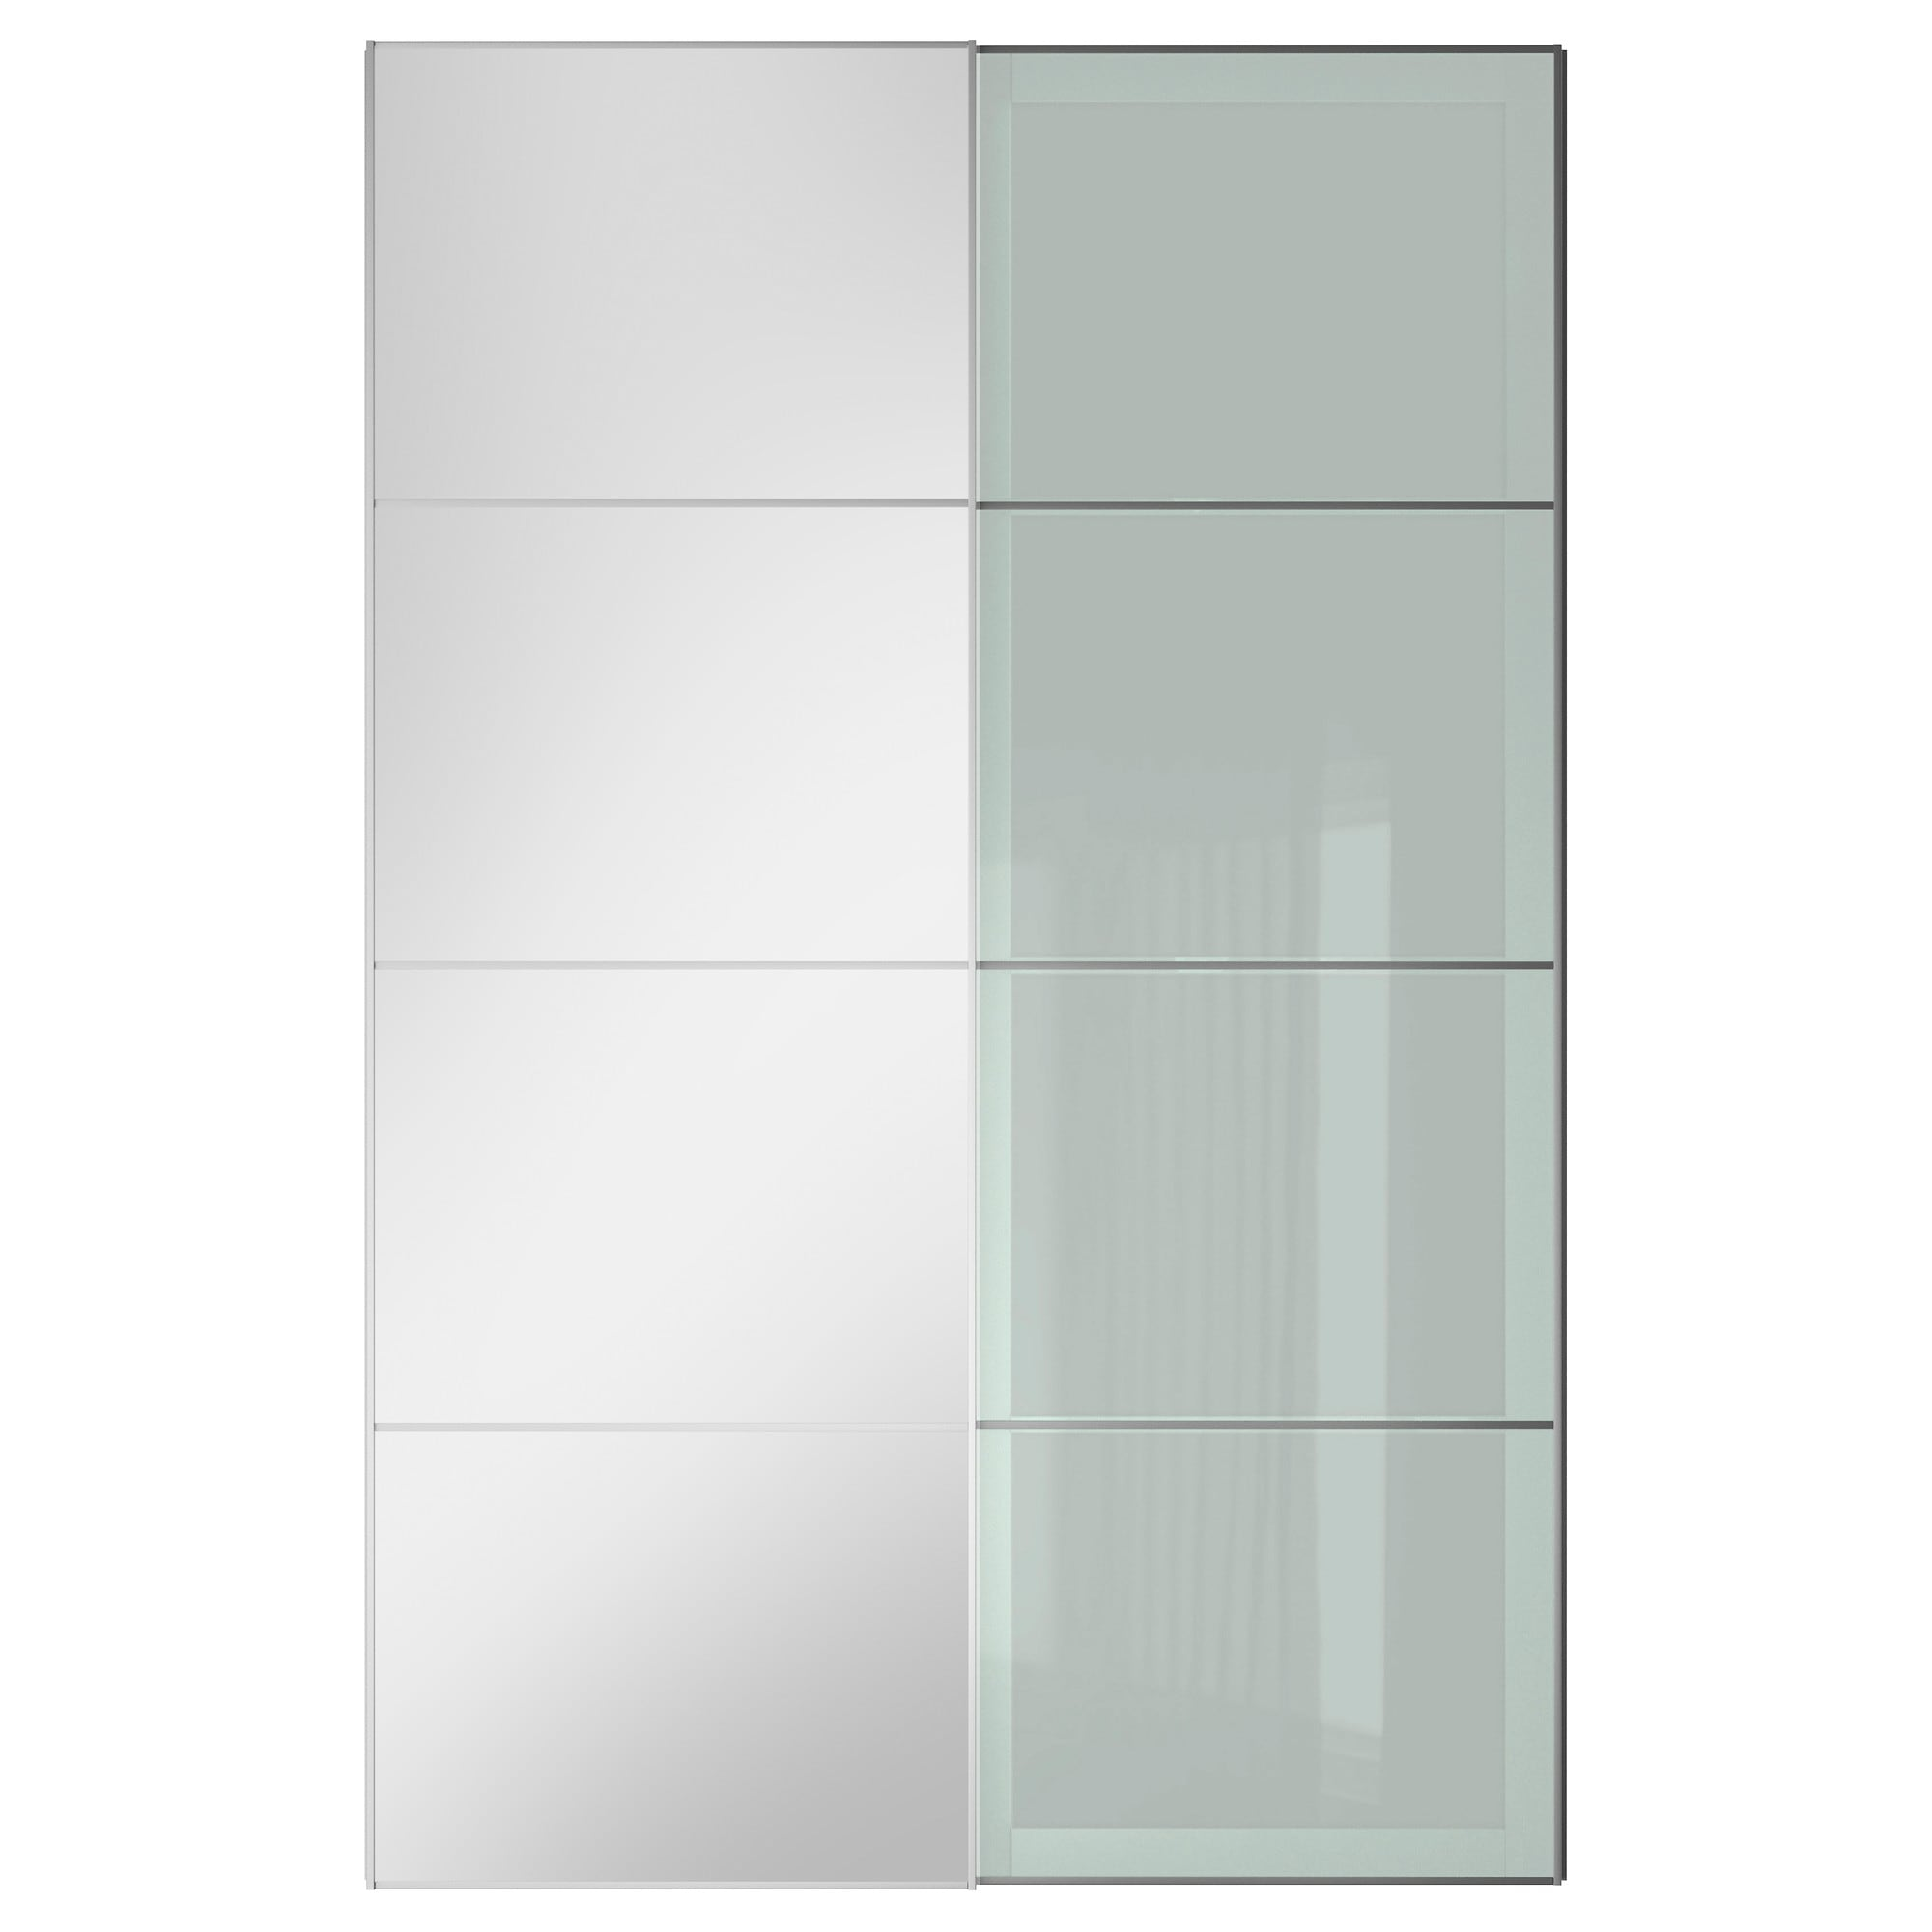 3 panel sliding closet doors - Auli Sekken Pair Of Sliding Doors Mirror Glass Frosted Glass Width 78